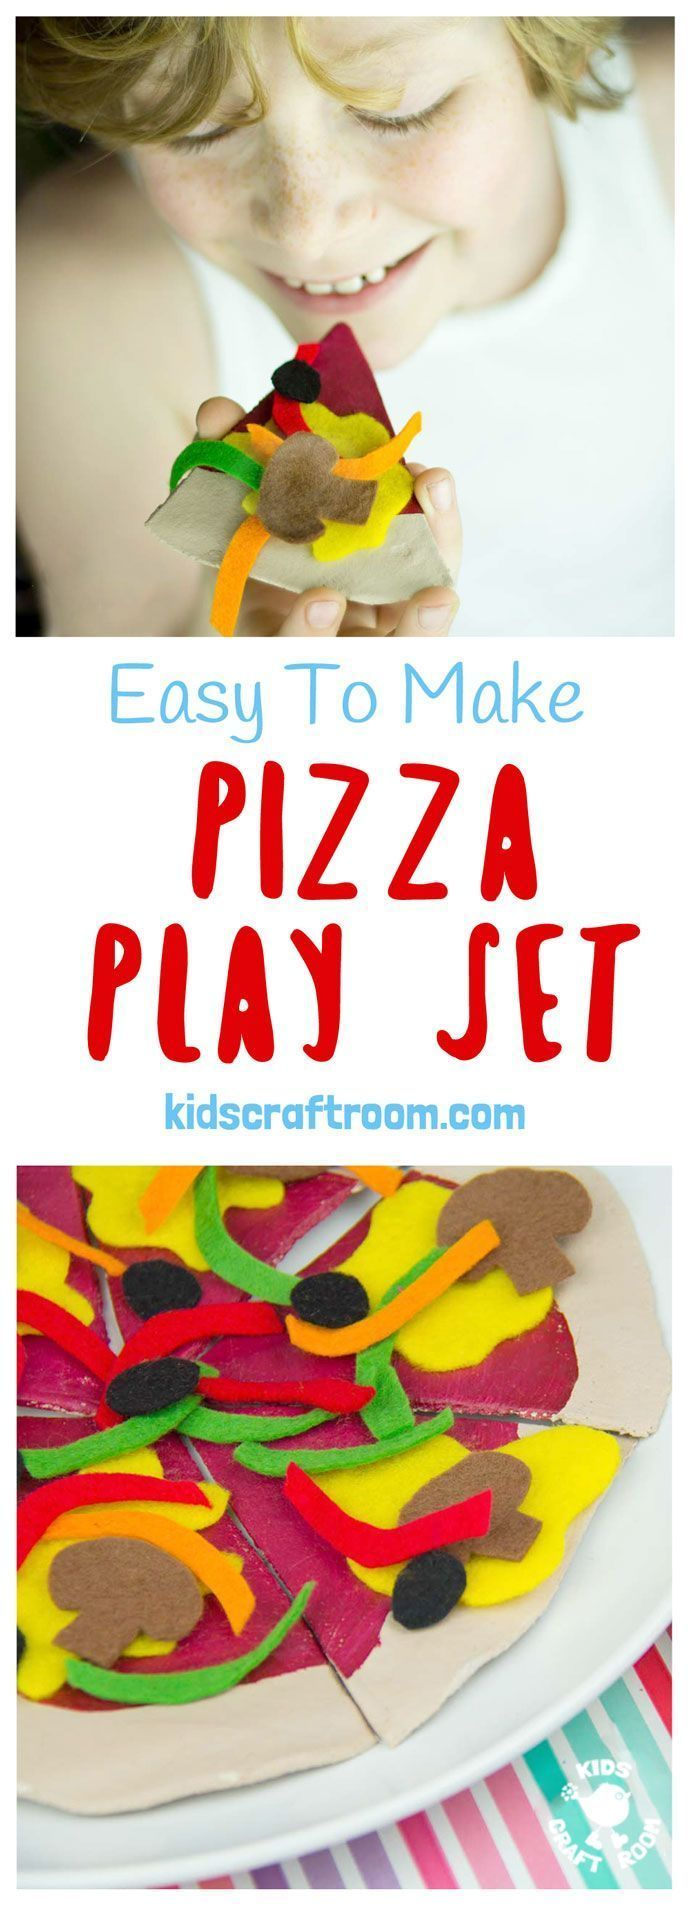 HOMEMADE PIZZA PLAY SET Your kids will enjoy hours of imaginative play and learning with this easy to make and very realistic pizza pretend food set. #kidscraftroom #play #playideas #pretendplay #dramaticplay #makebelieve #playkitchen #imaginativeplay #toys #homemadetoys #diytoys #pizza #saltdoughcrafts #saltdough #felt #feltcrafts #kidscrafts #craftsforkids #preschool #preschoollearning #earlyyears #earlylearning #prek  via @KidsCraftRoom